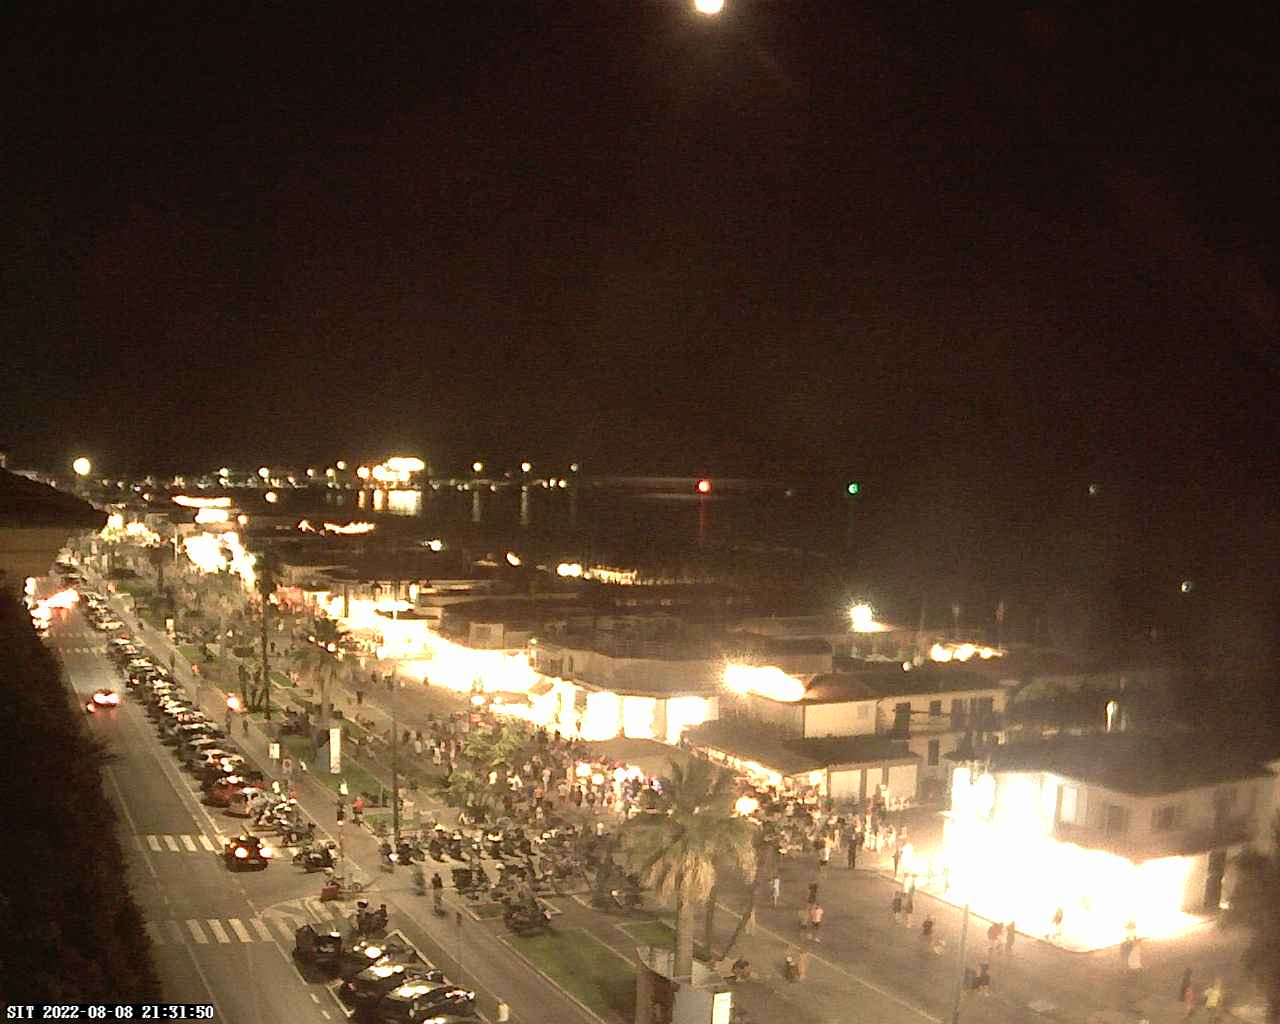 Versilia Weather Webcam - Click on the image to enlarge